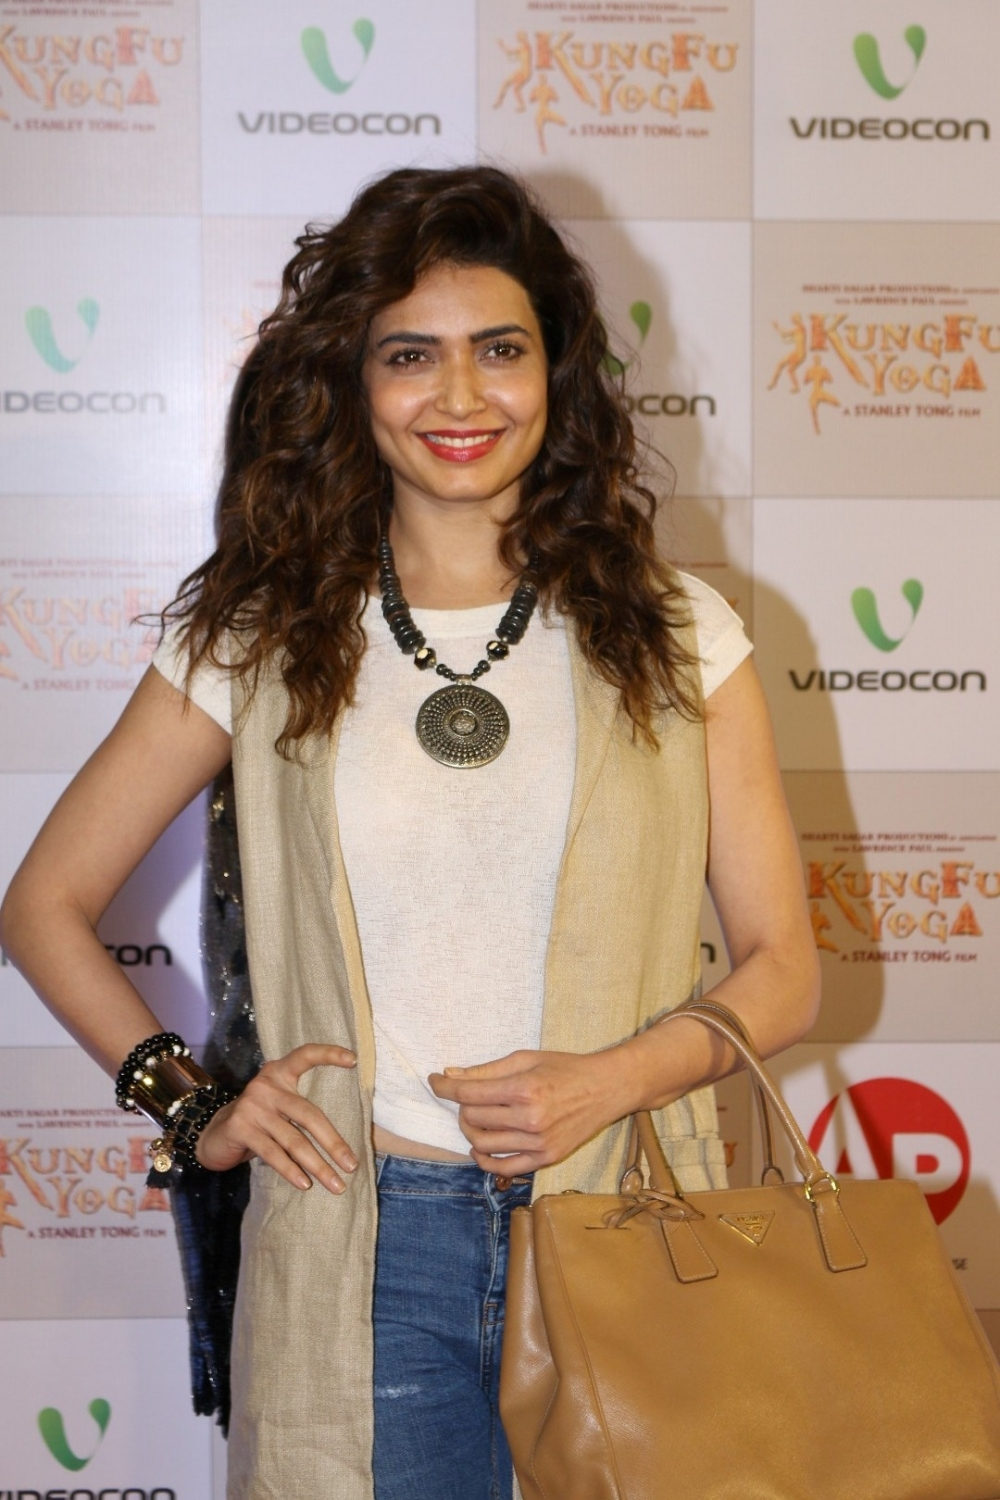 Mumbai: Actress Karishma Tanna during the screening of film Kung Fu Yoga in Mumbai on Feb 2, 2017. (Photo: IANS)